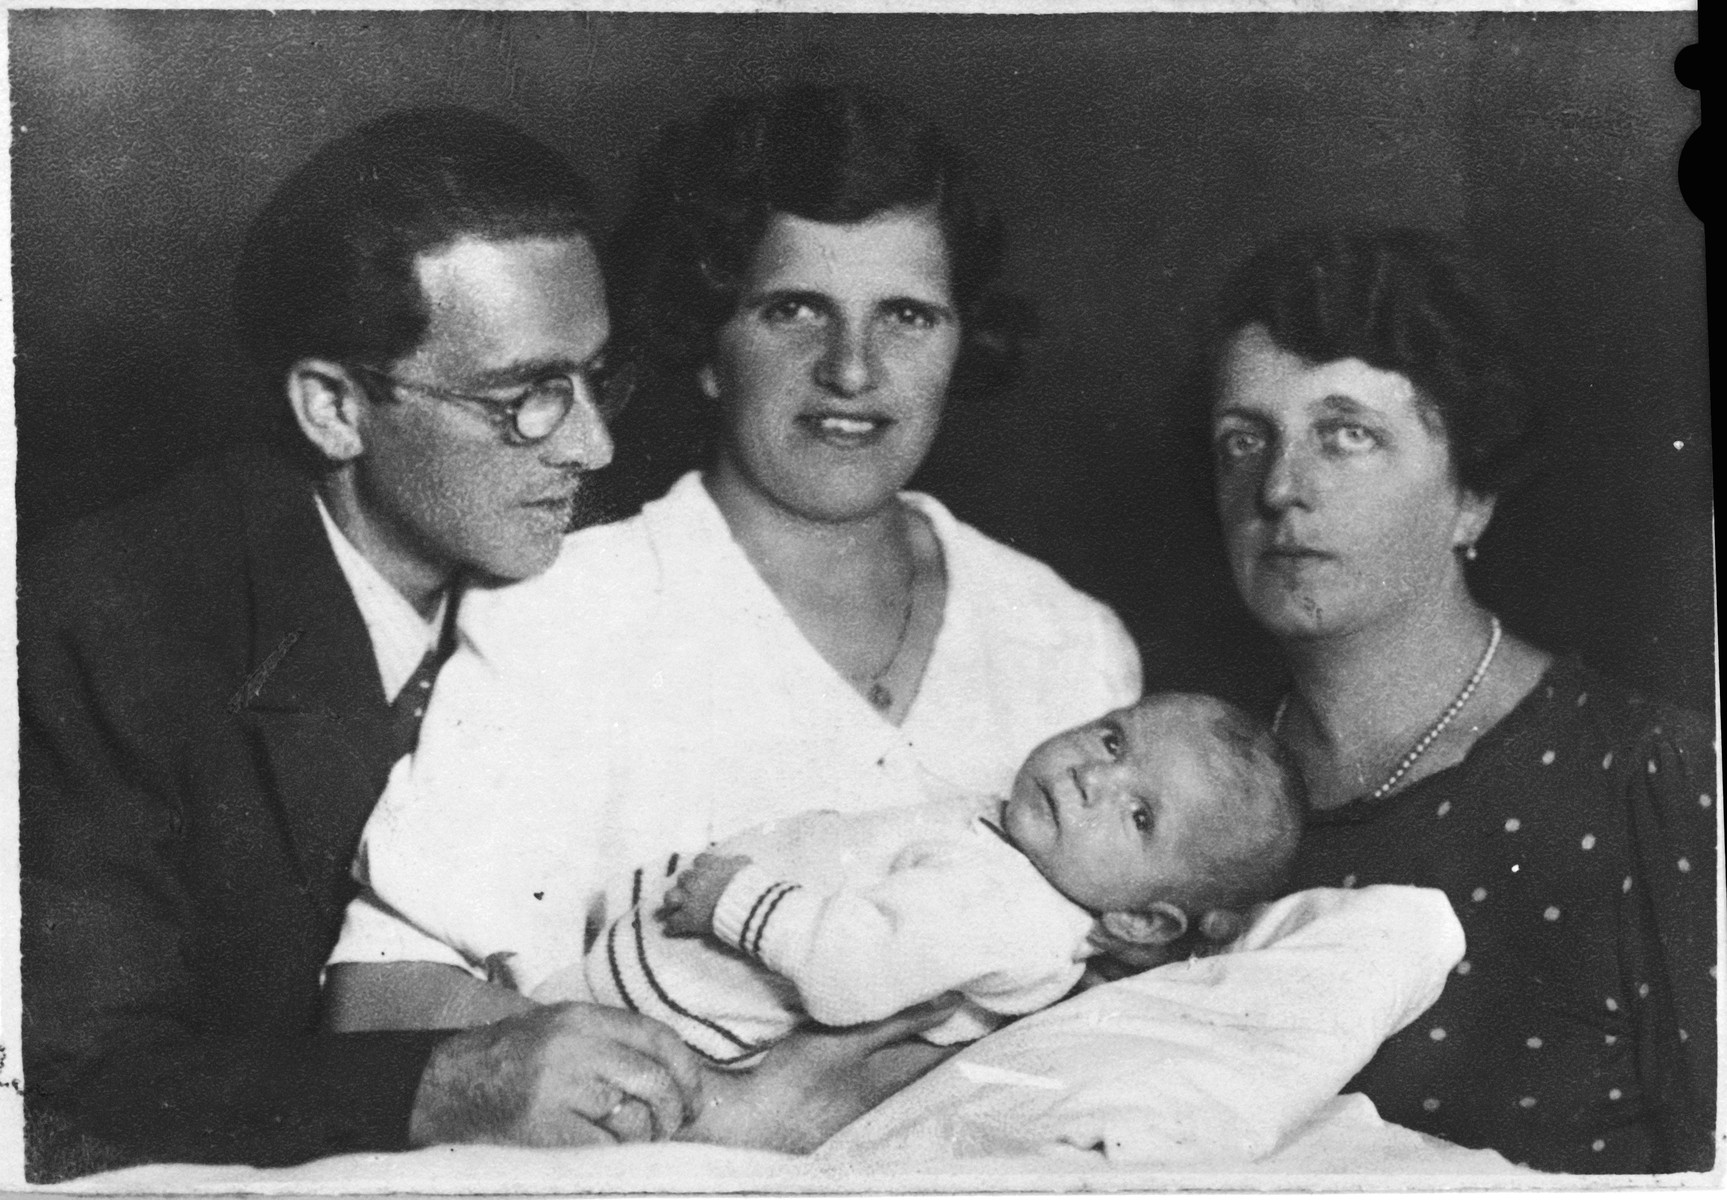 Portrait of Oskar and Berta Fiedler with their infant son, Harry.